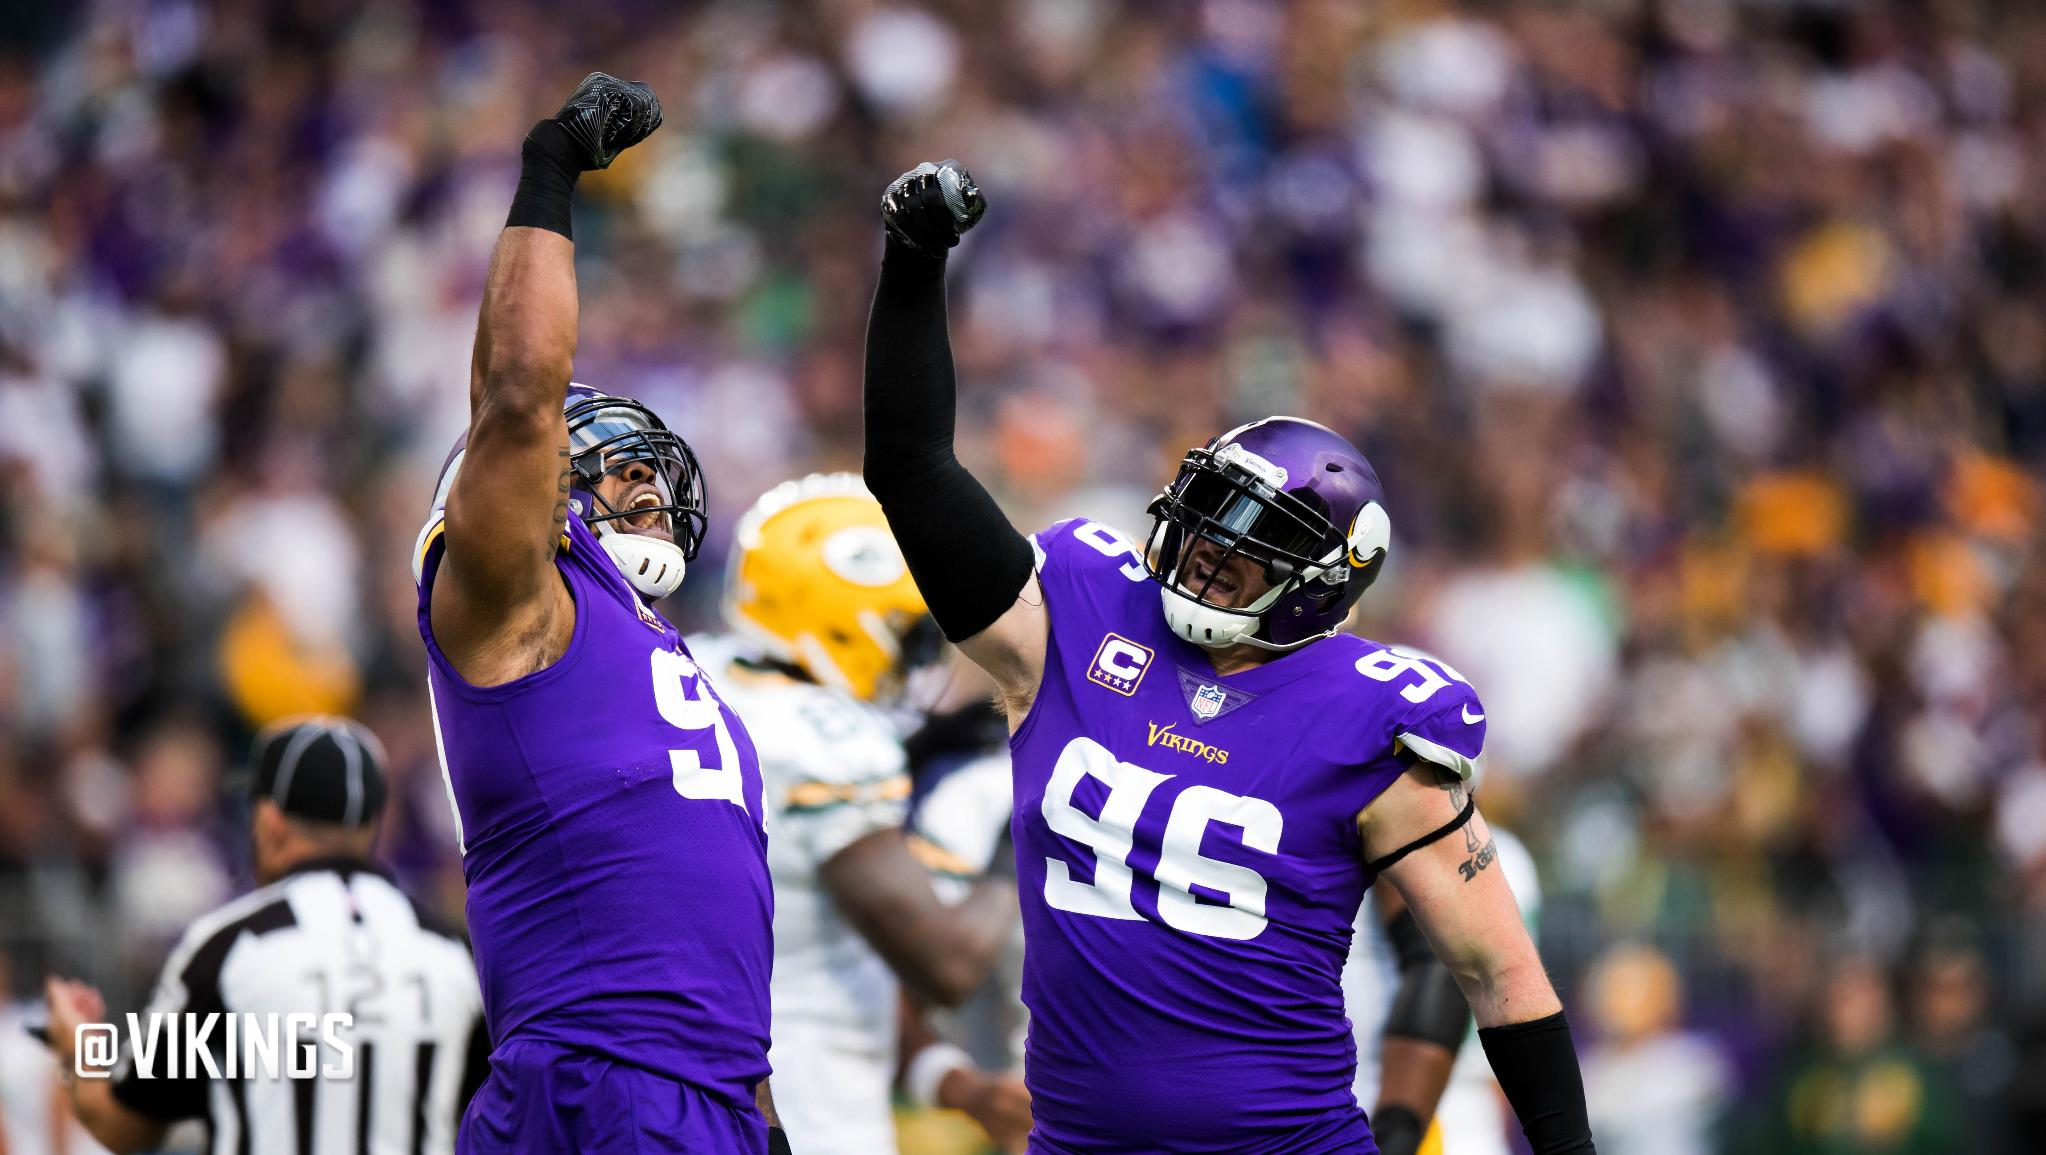 The #Vikings defensive line dominated once again in 2017.   ��: https://t.co/KfDFwBontA https://t.co/zA1zFyJcUe